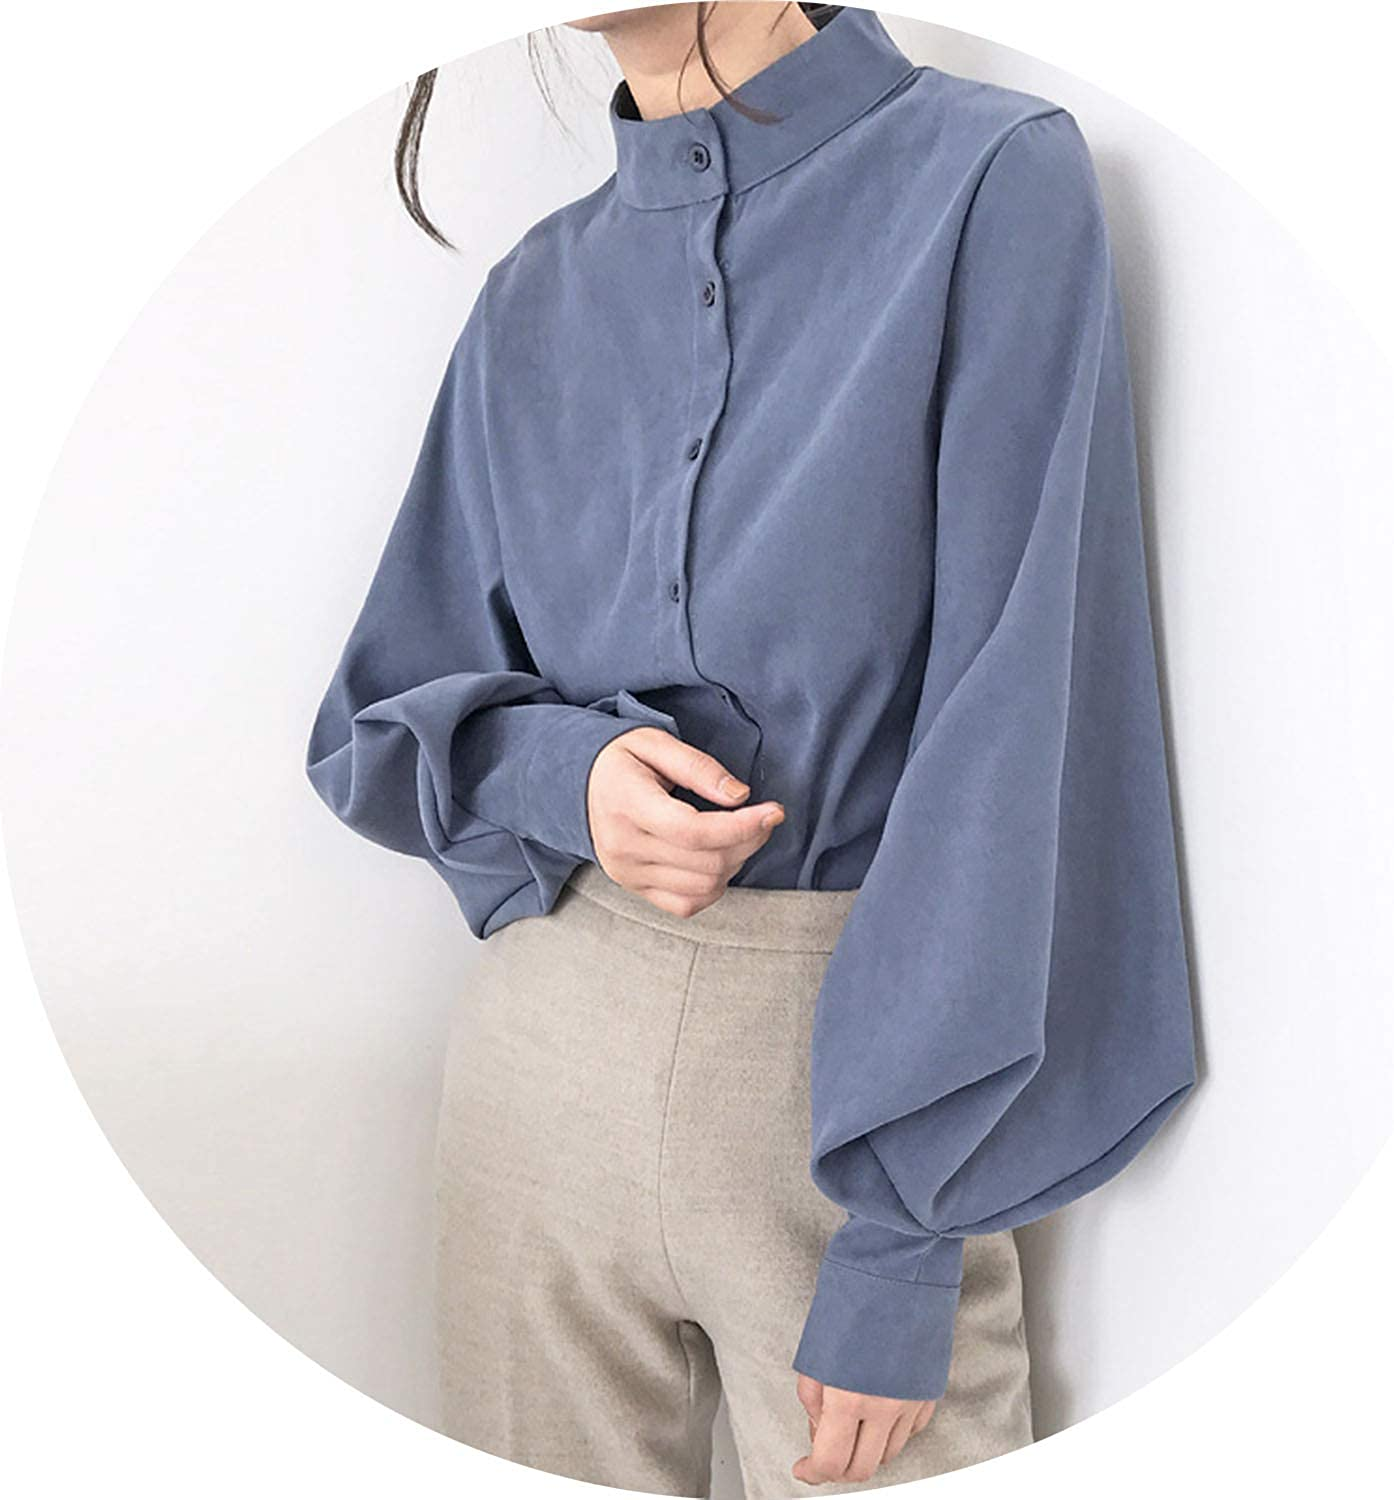 AllAboutUs New 2019 Fashion Blouse Women Stand Collar Shirt Large Lantern Sleeve Kimono Cardigan Vogue Women Shirts